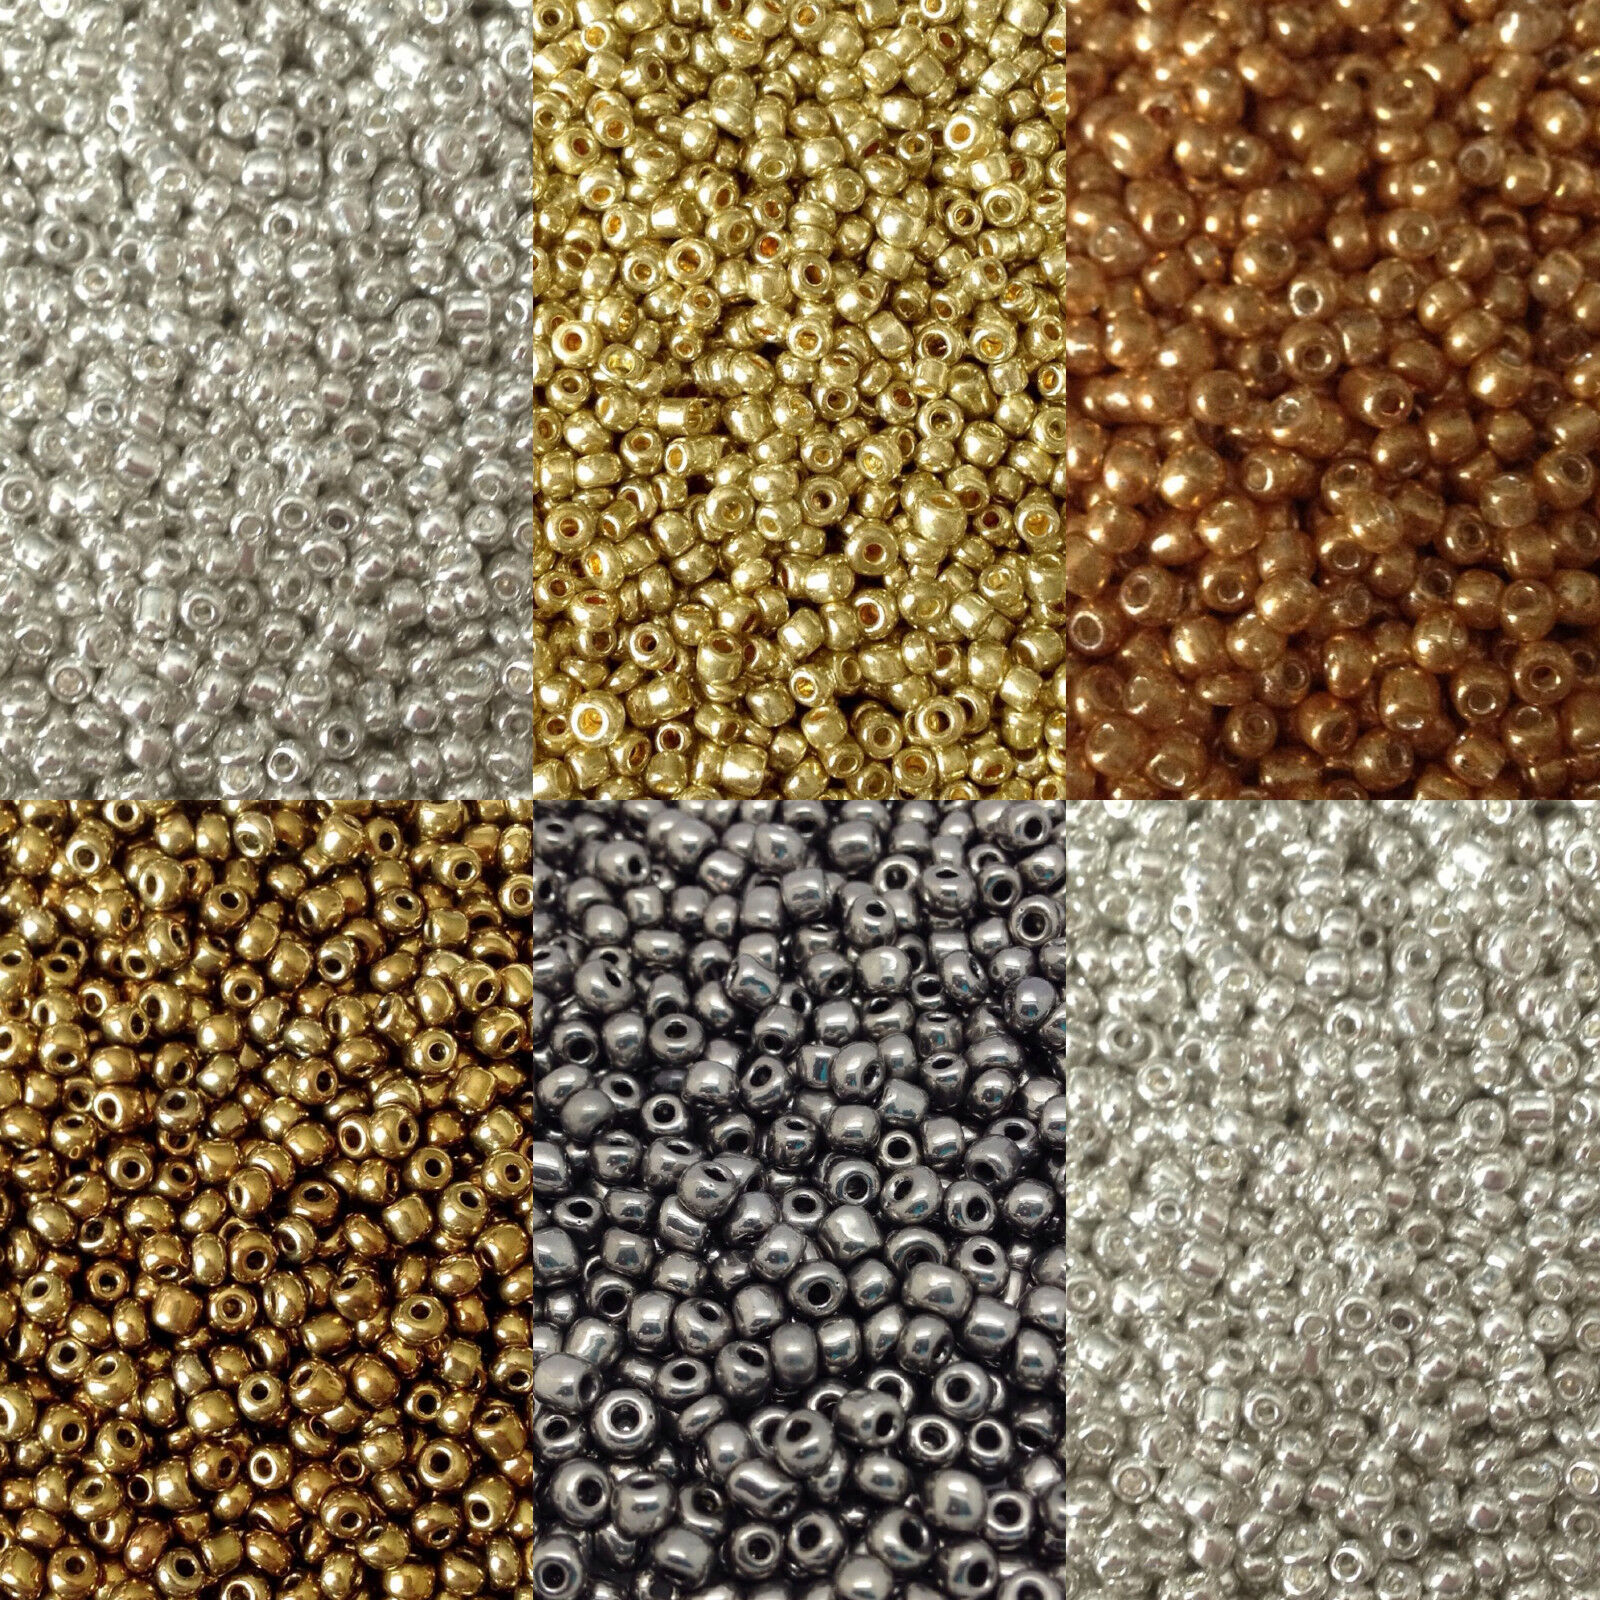 50g glass seed beads - Metallic, size 11/0 (approx 2mm) - choice of colours